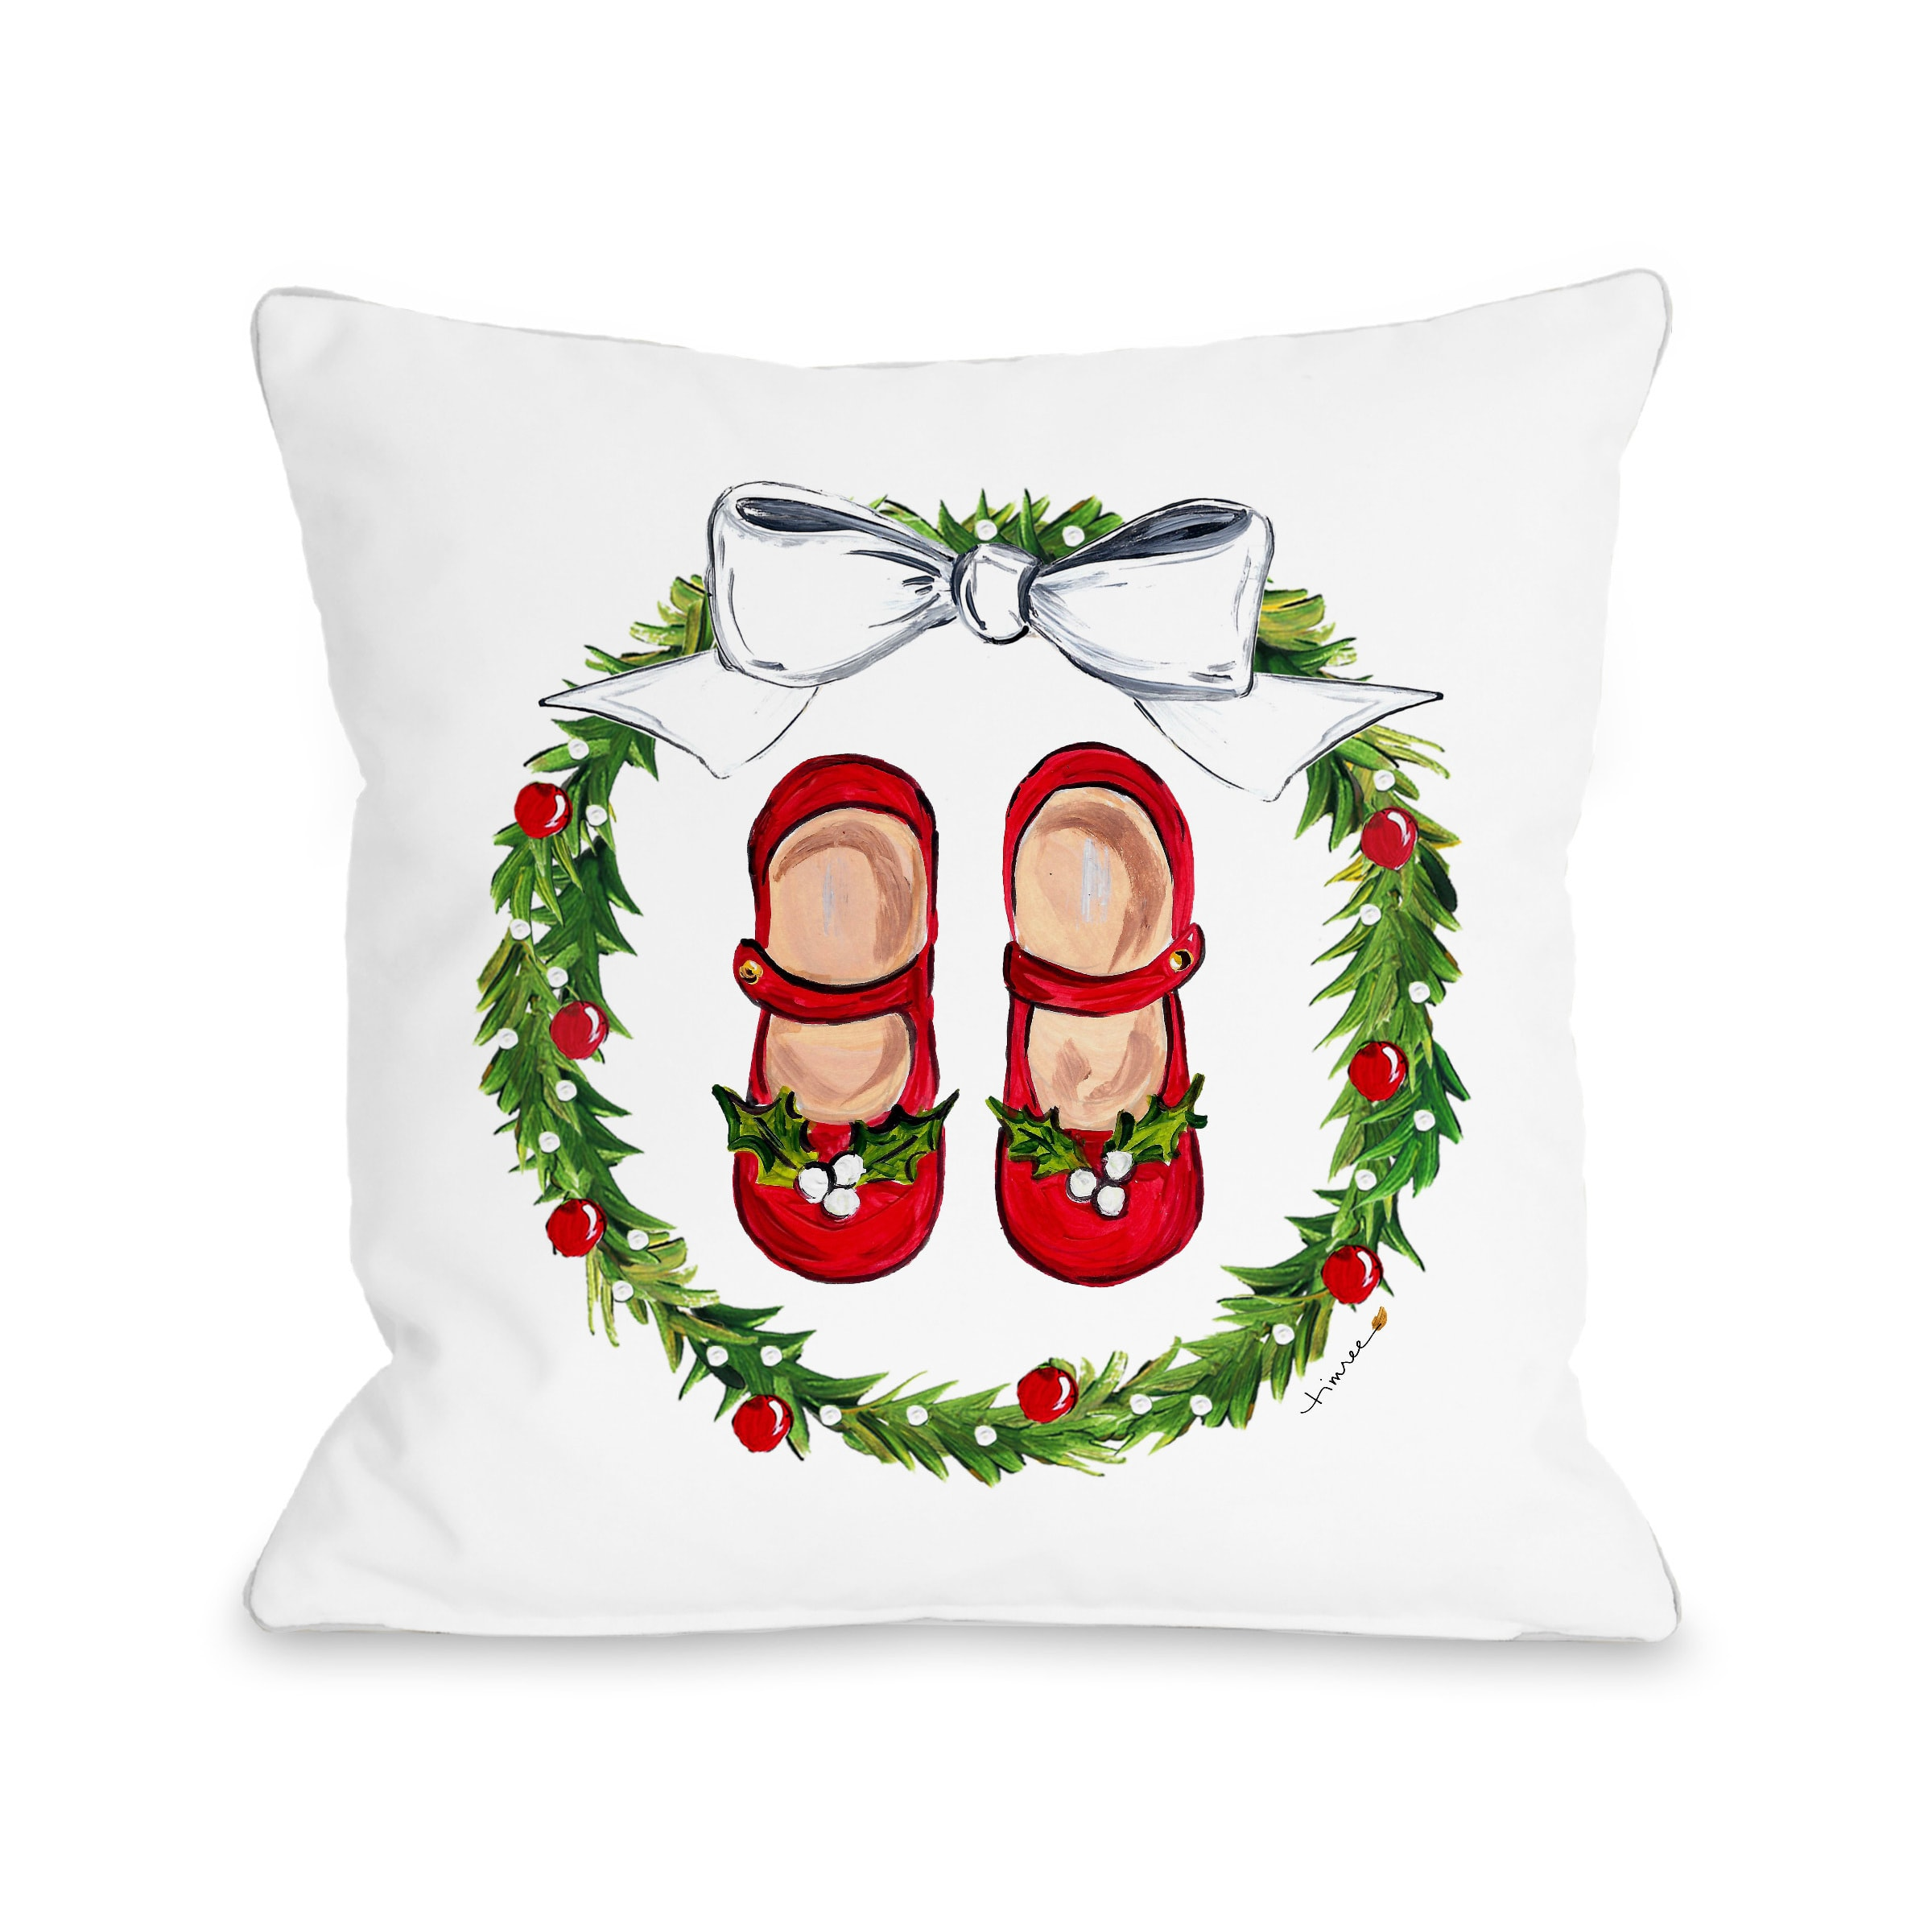 Mary Janes Wreath - Multi 16x16 Pillow by Timree Gold